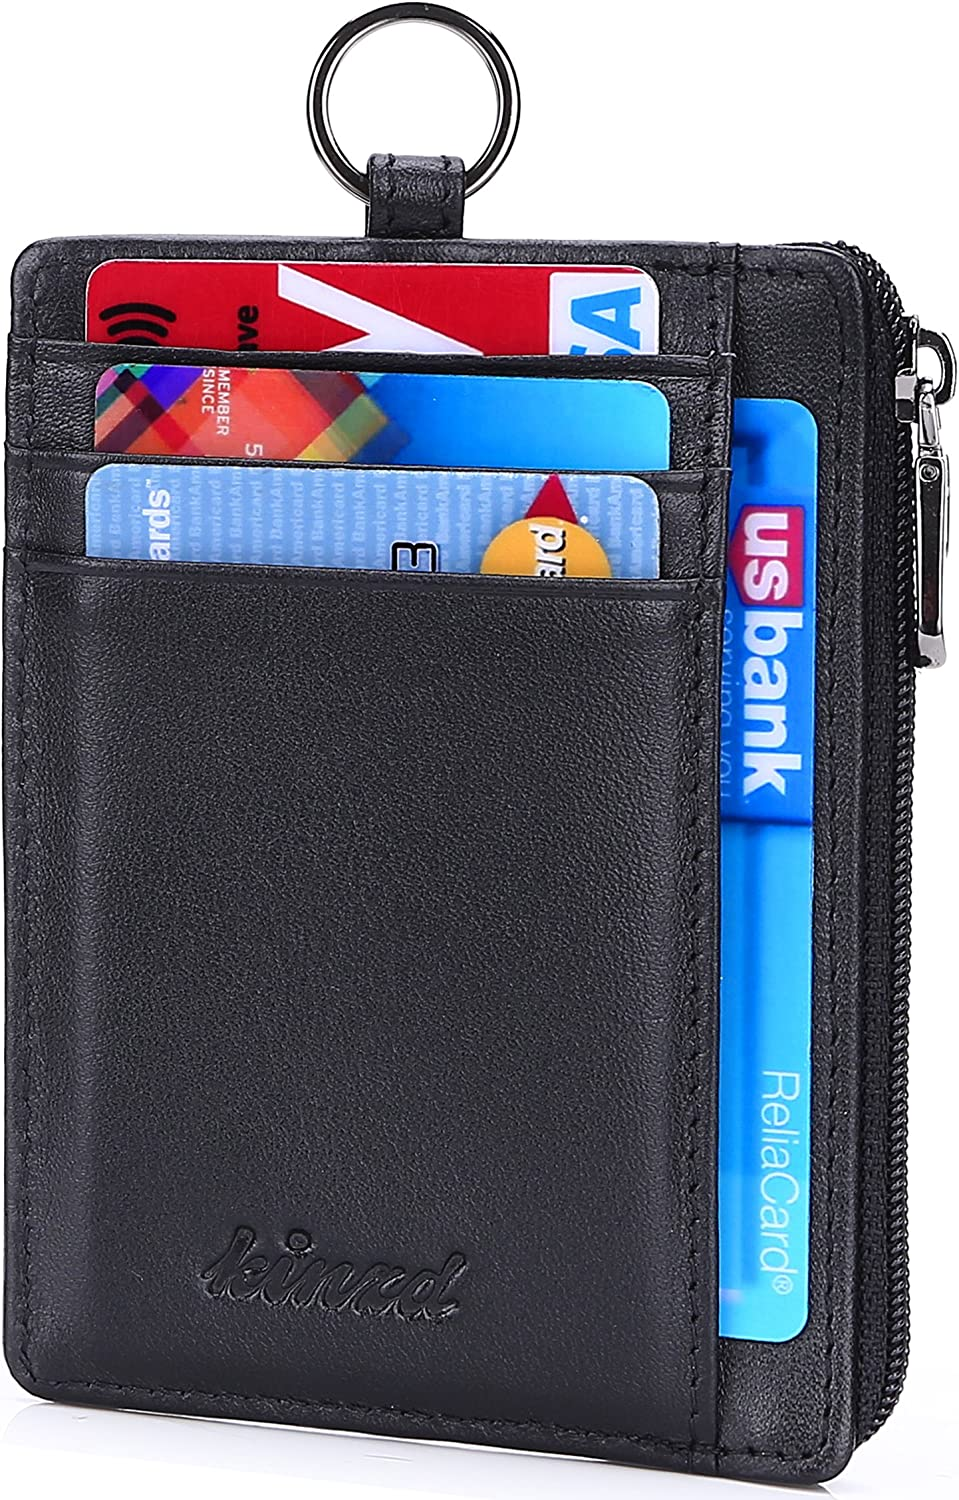 Kinzd Slim Minimalist Zipper Credit Card Holder Leather Front Pocket Wallet with Keychain Ring Lanyard Strap